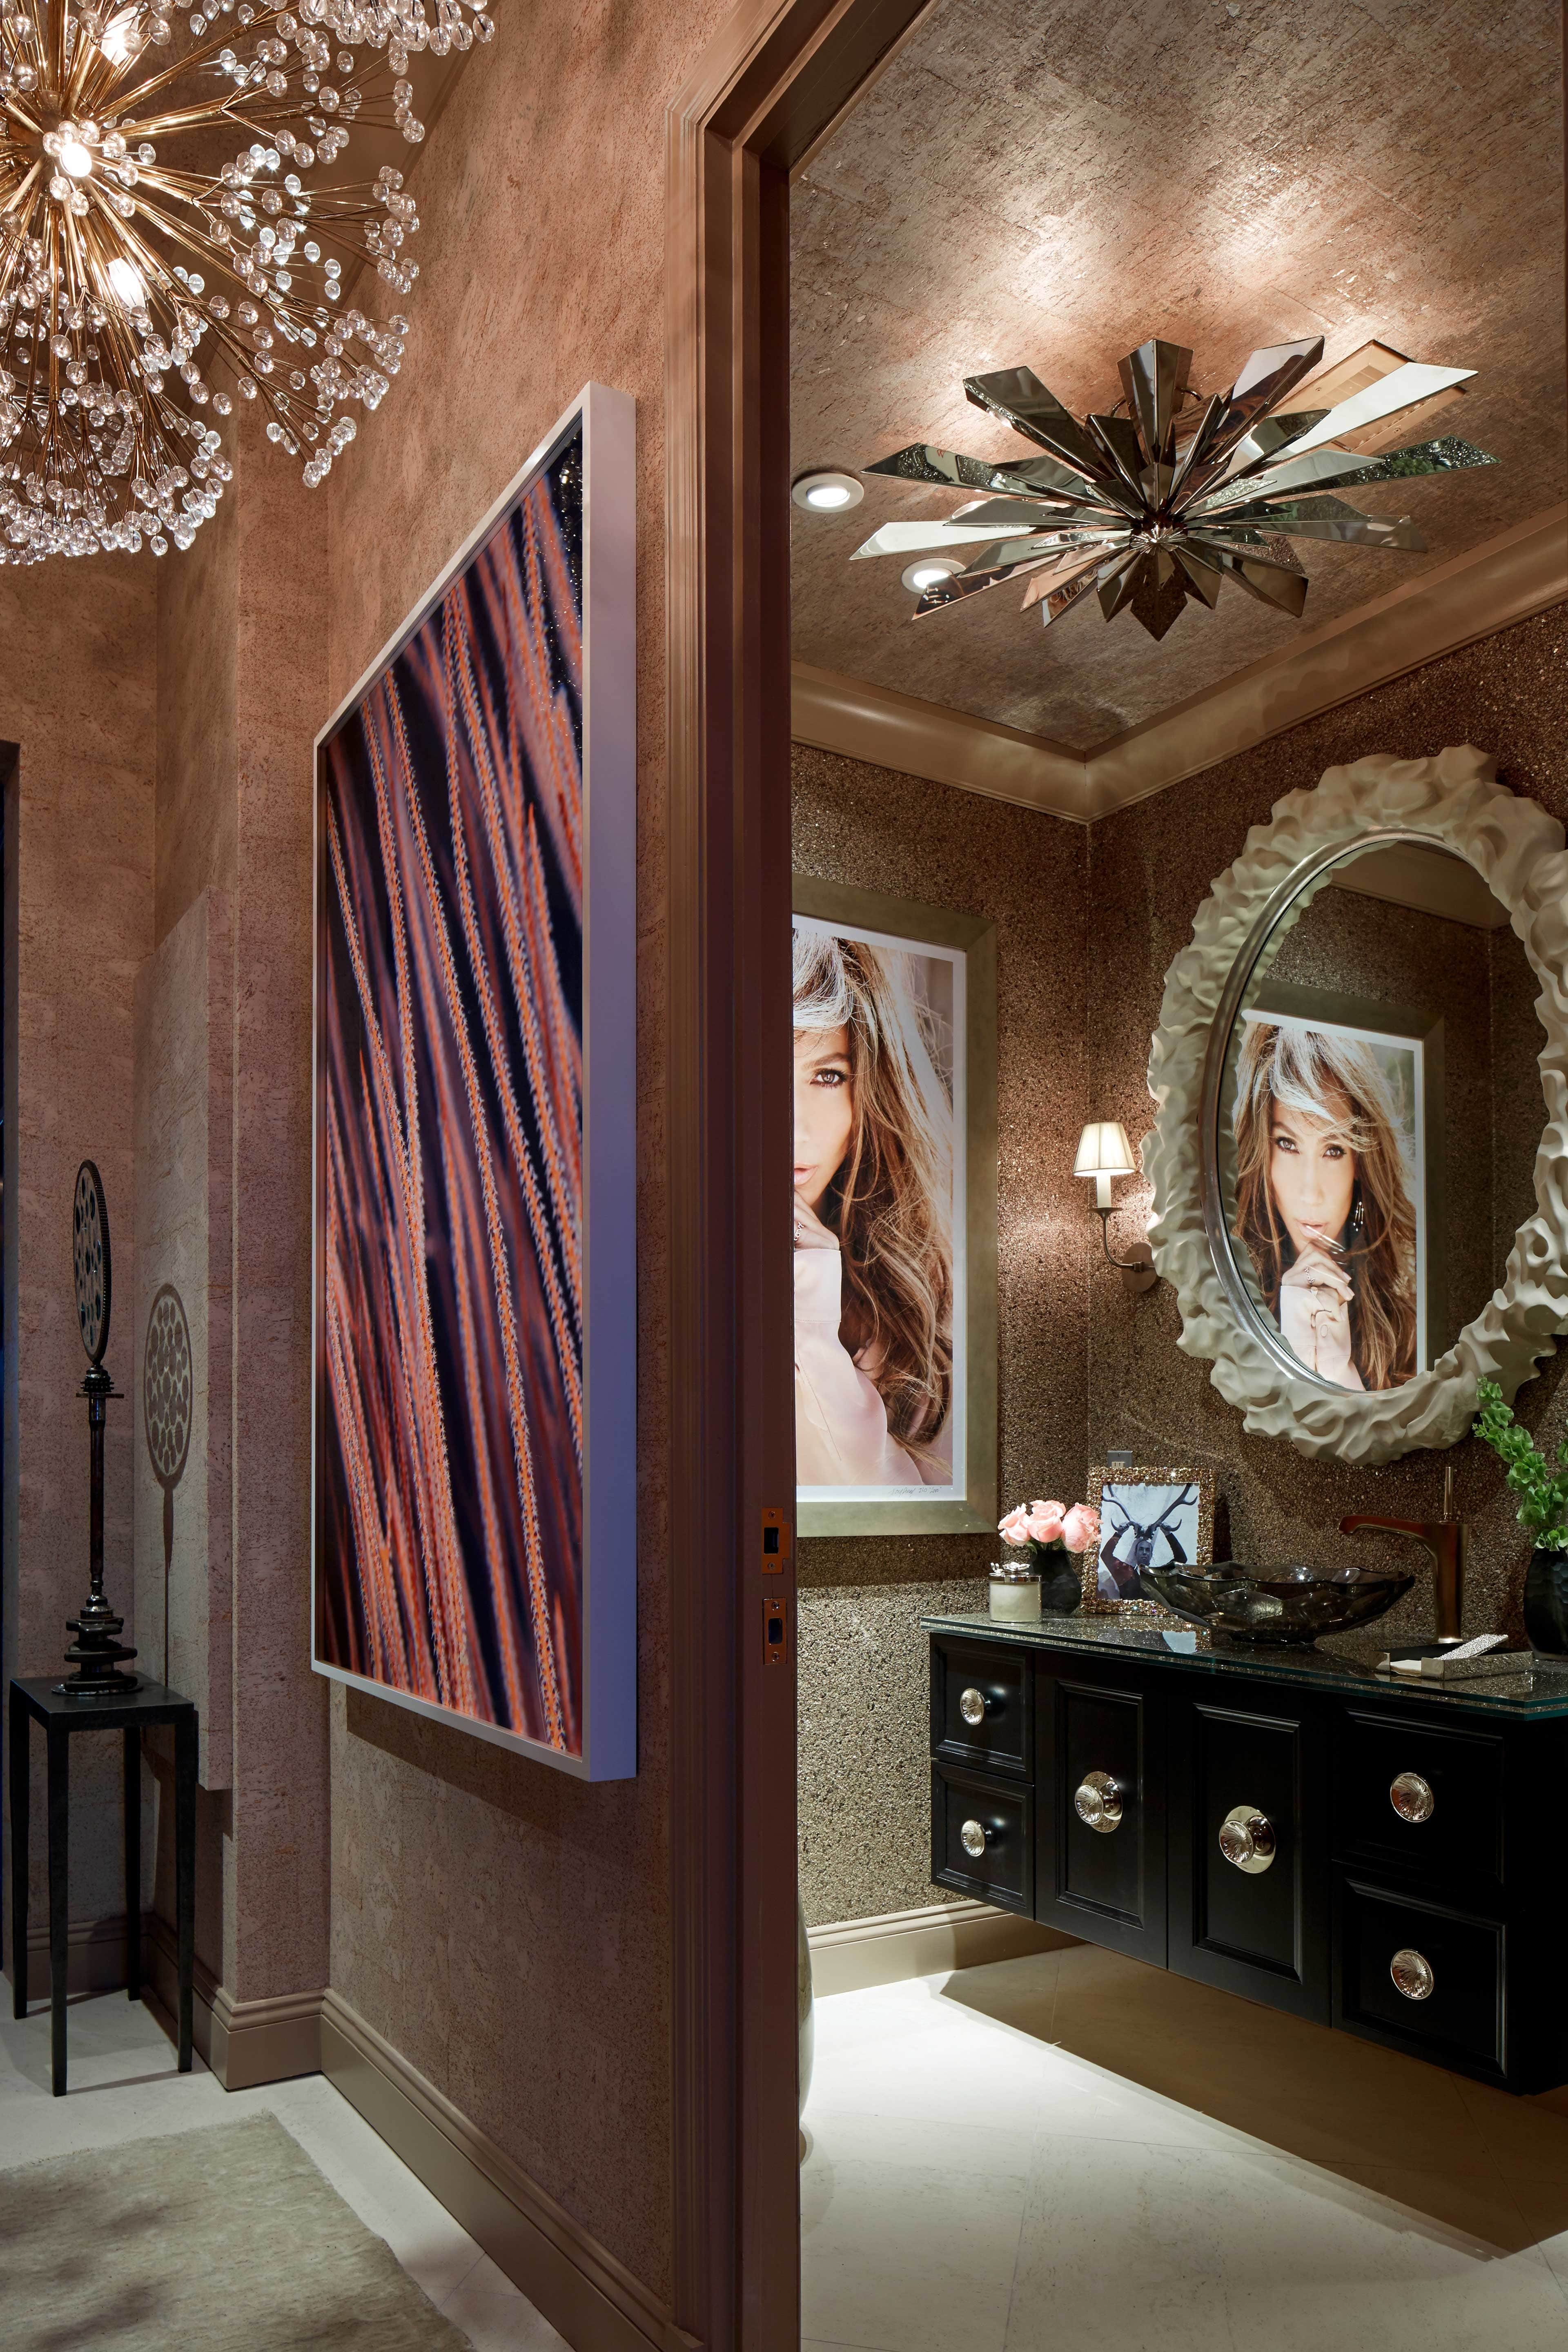 J. Lo's Jewel Box at the 2016 Kips Bay. Photo courtesy Phillip-Ennis-Productions.